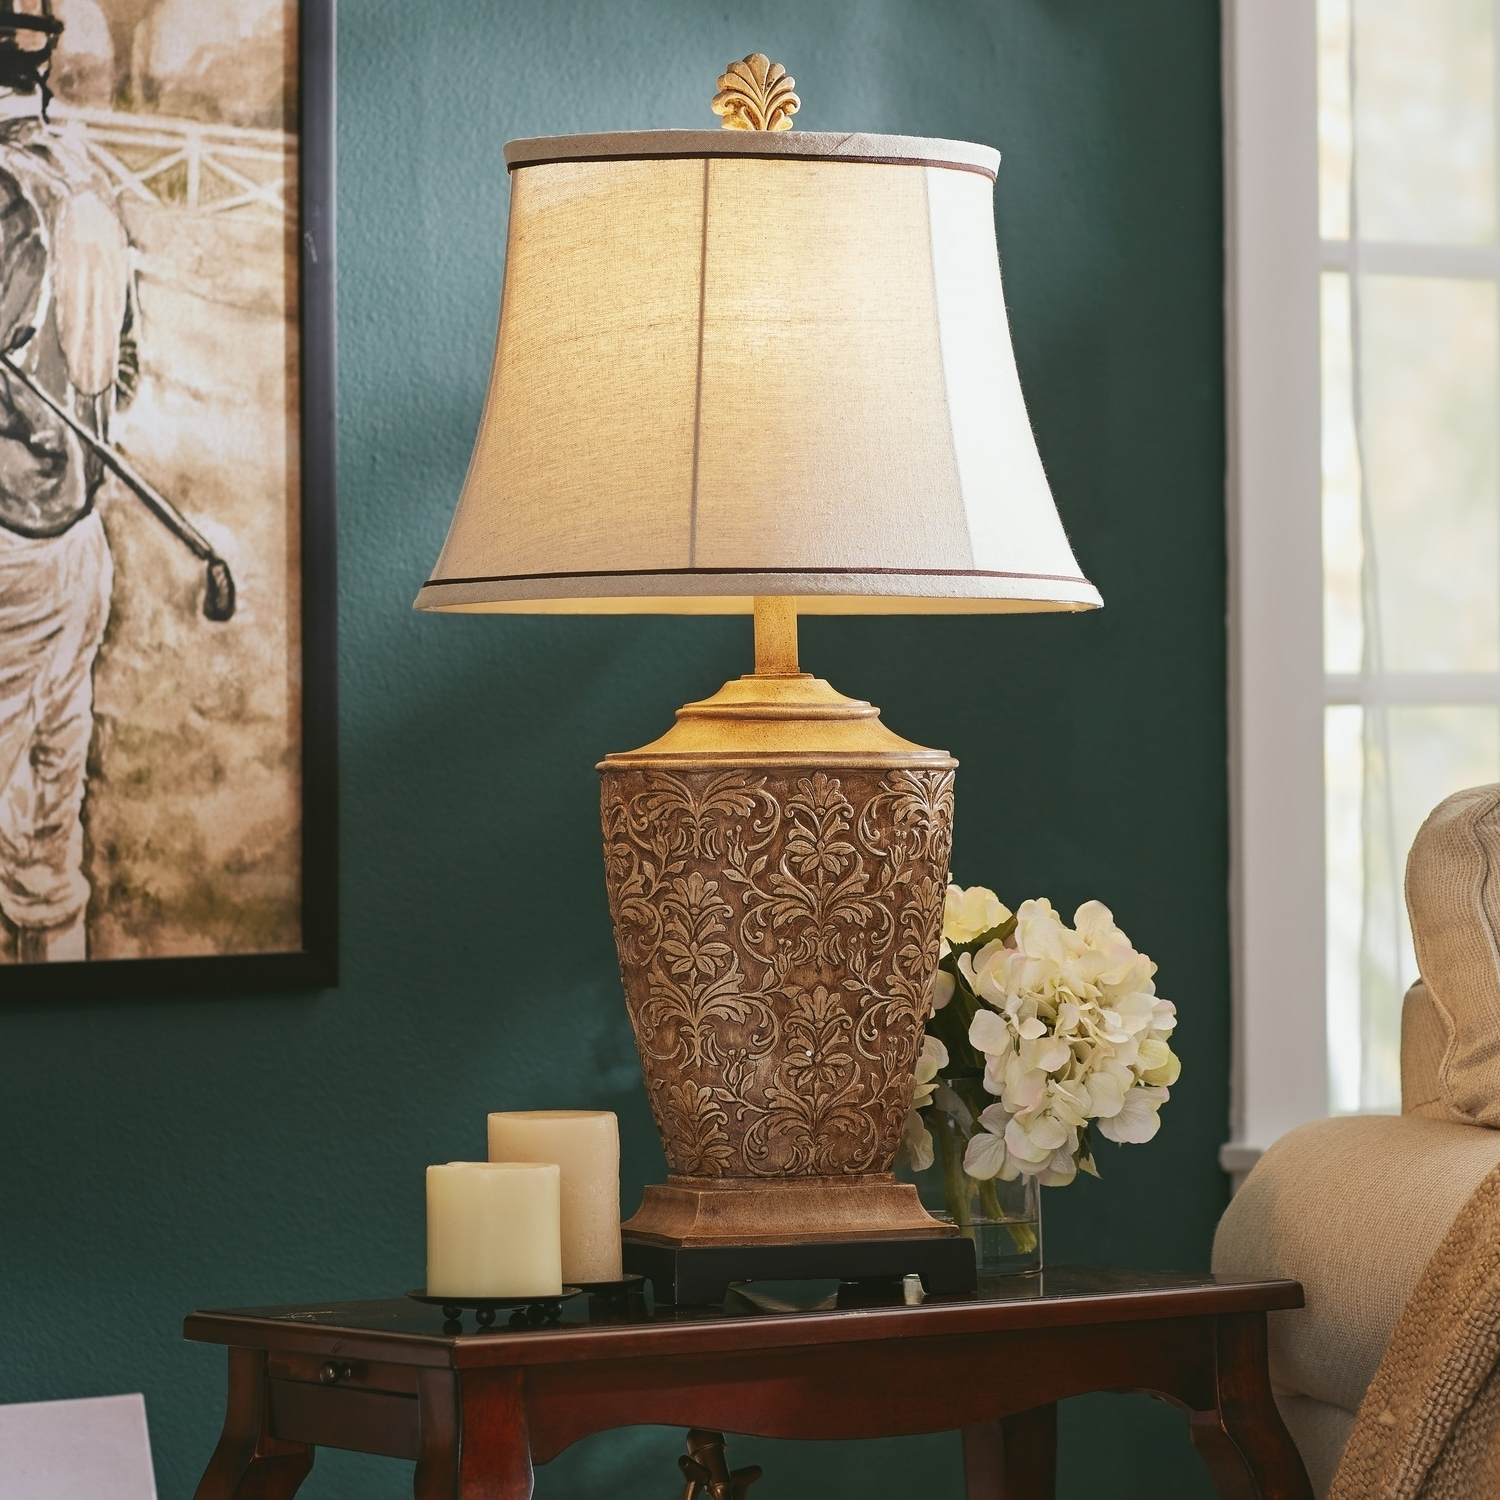 Small Living Room Table Lamps Pertaining To Most Current Living Room Table Lamps 10 Methods To Bring Incandescent, Wooden (View 12 of 20)